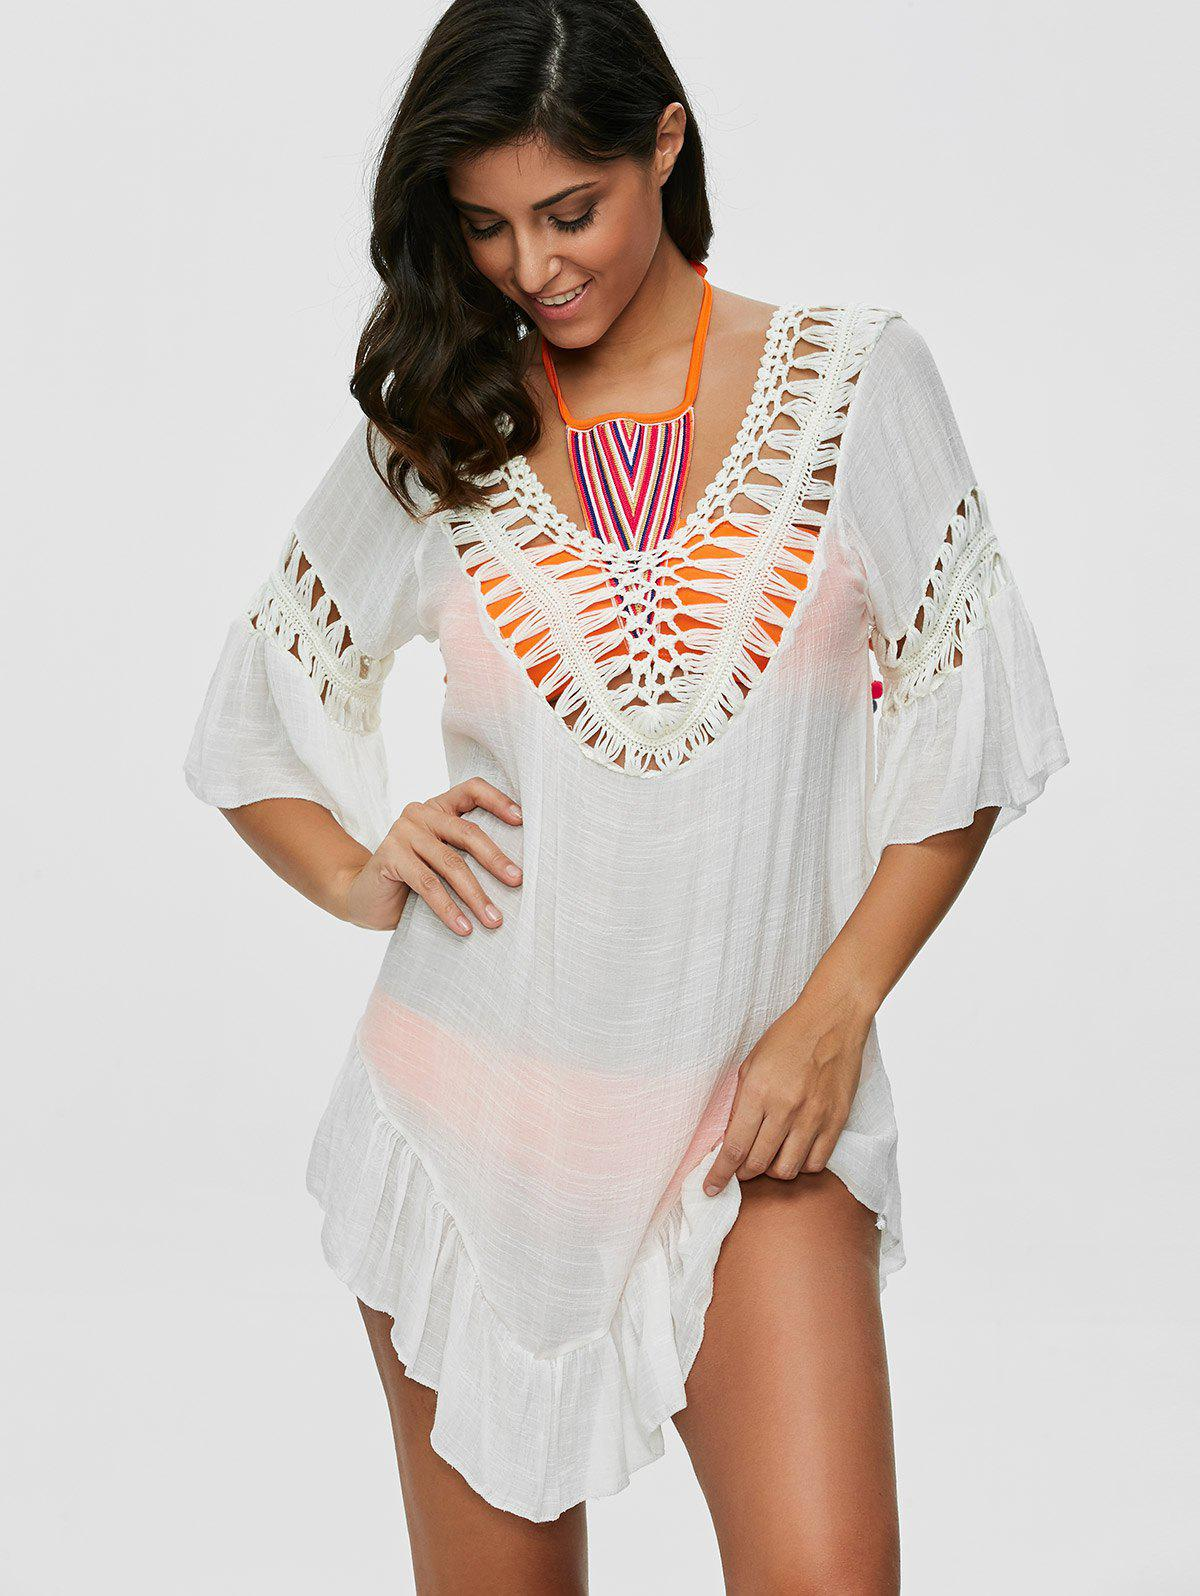 Pompon See-Through Crochet Tunic Beach Cover Up - WHITE ONE SIZE